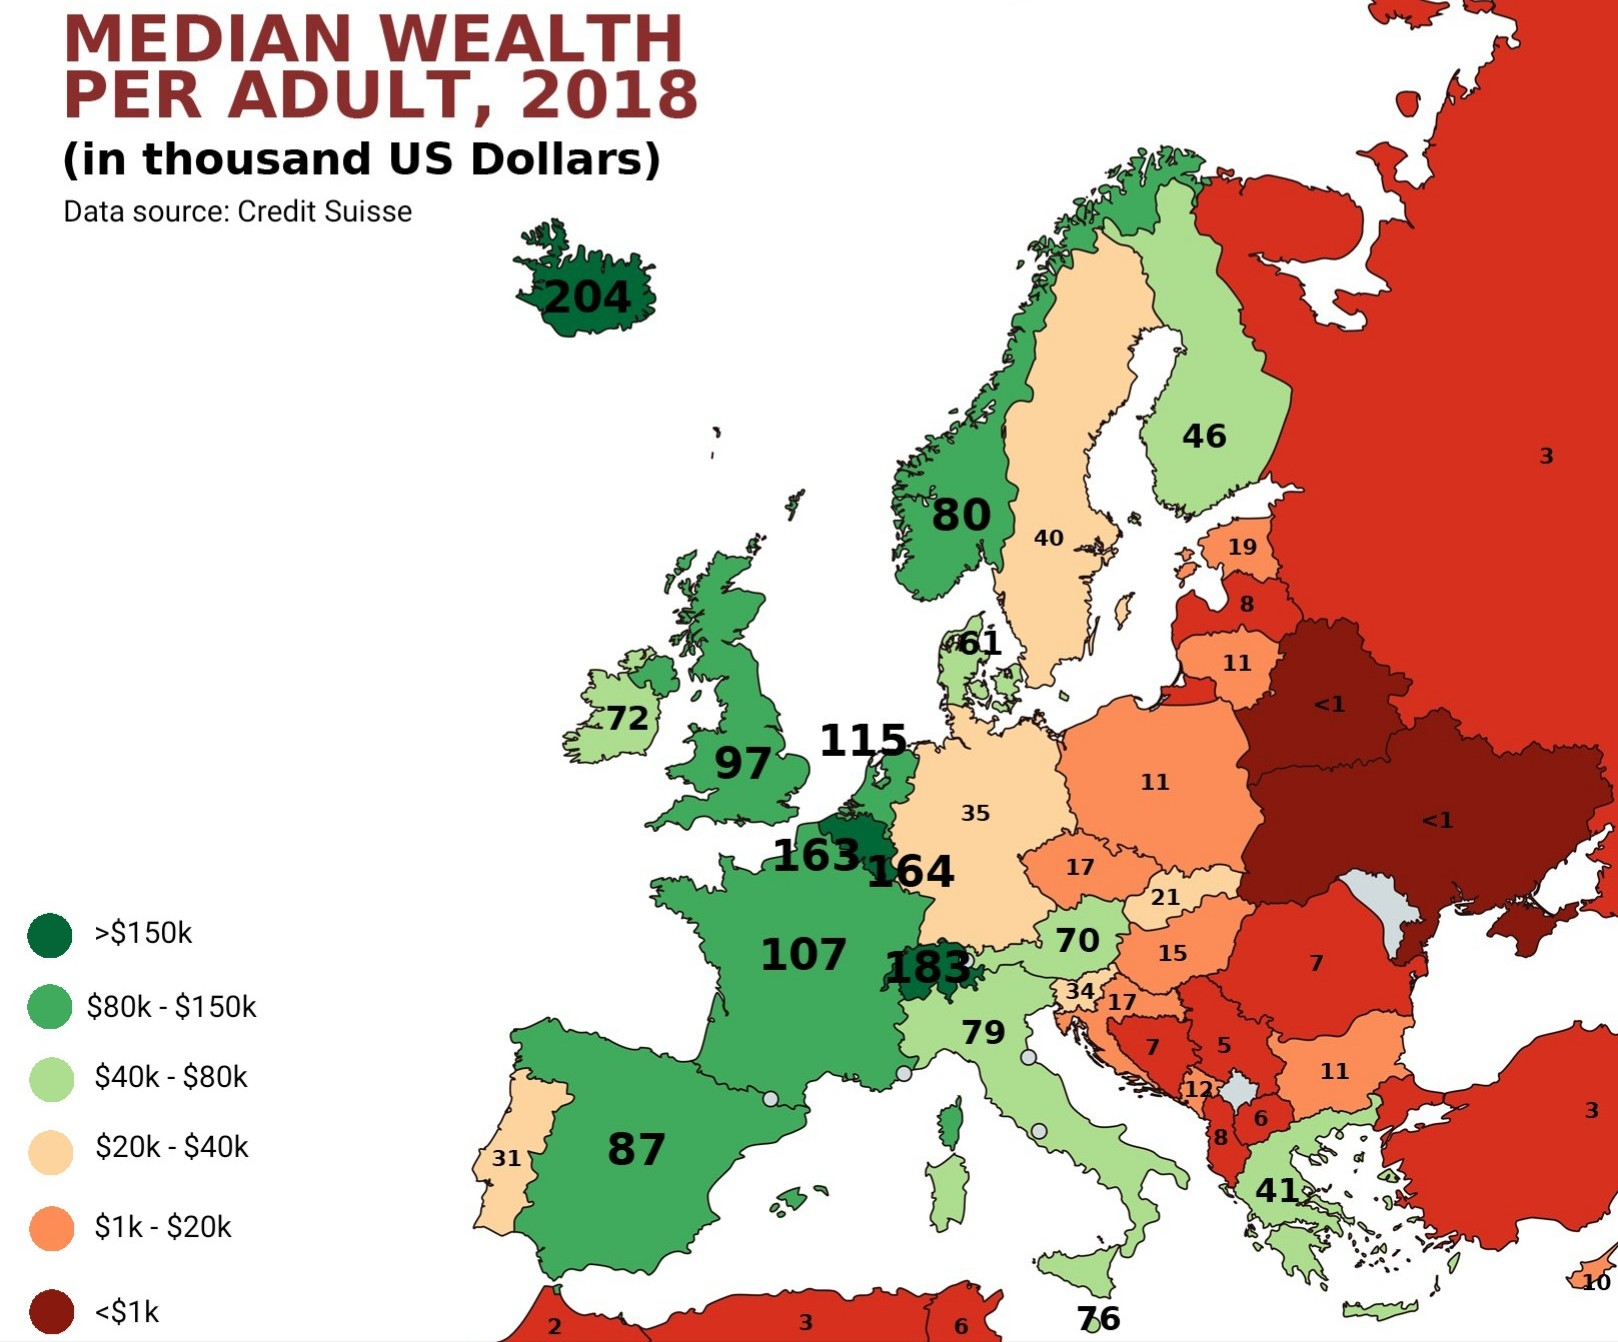 European_countries_by_median_wealth_per_